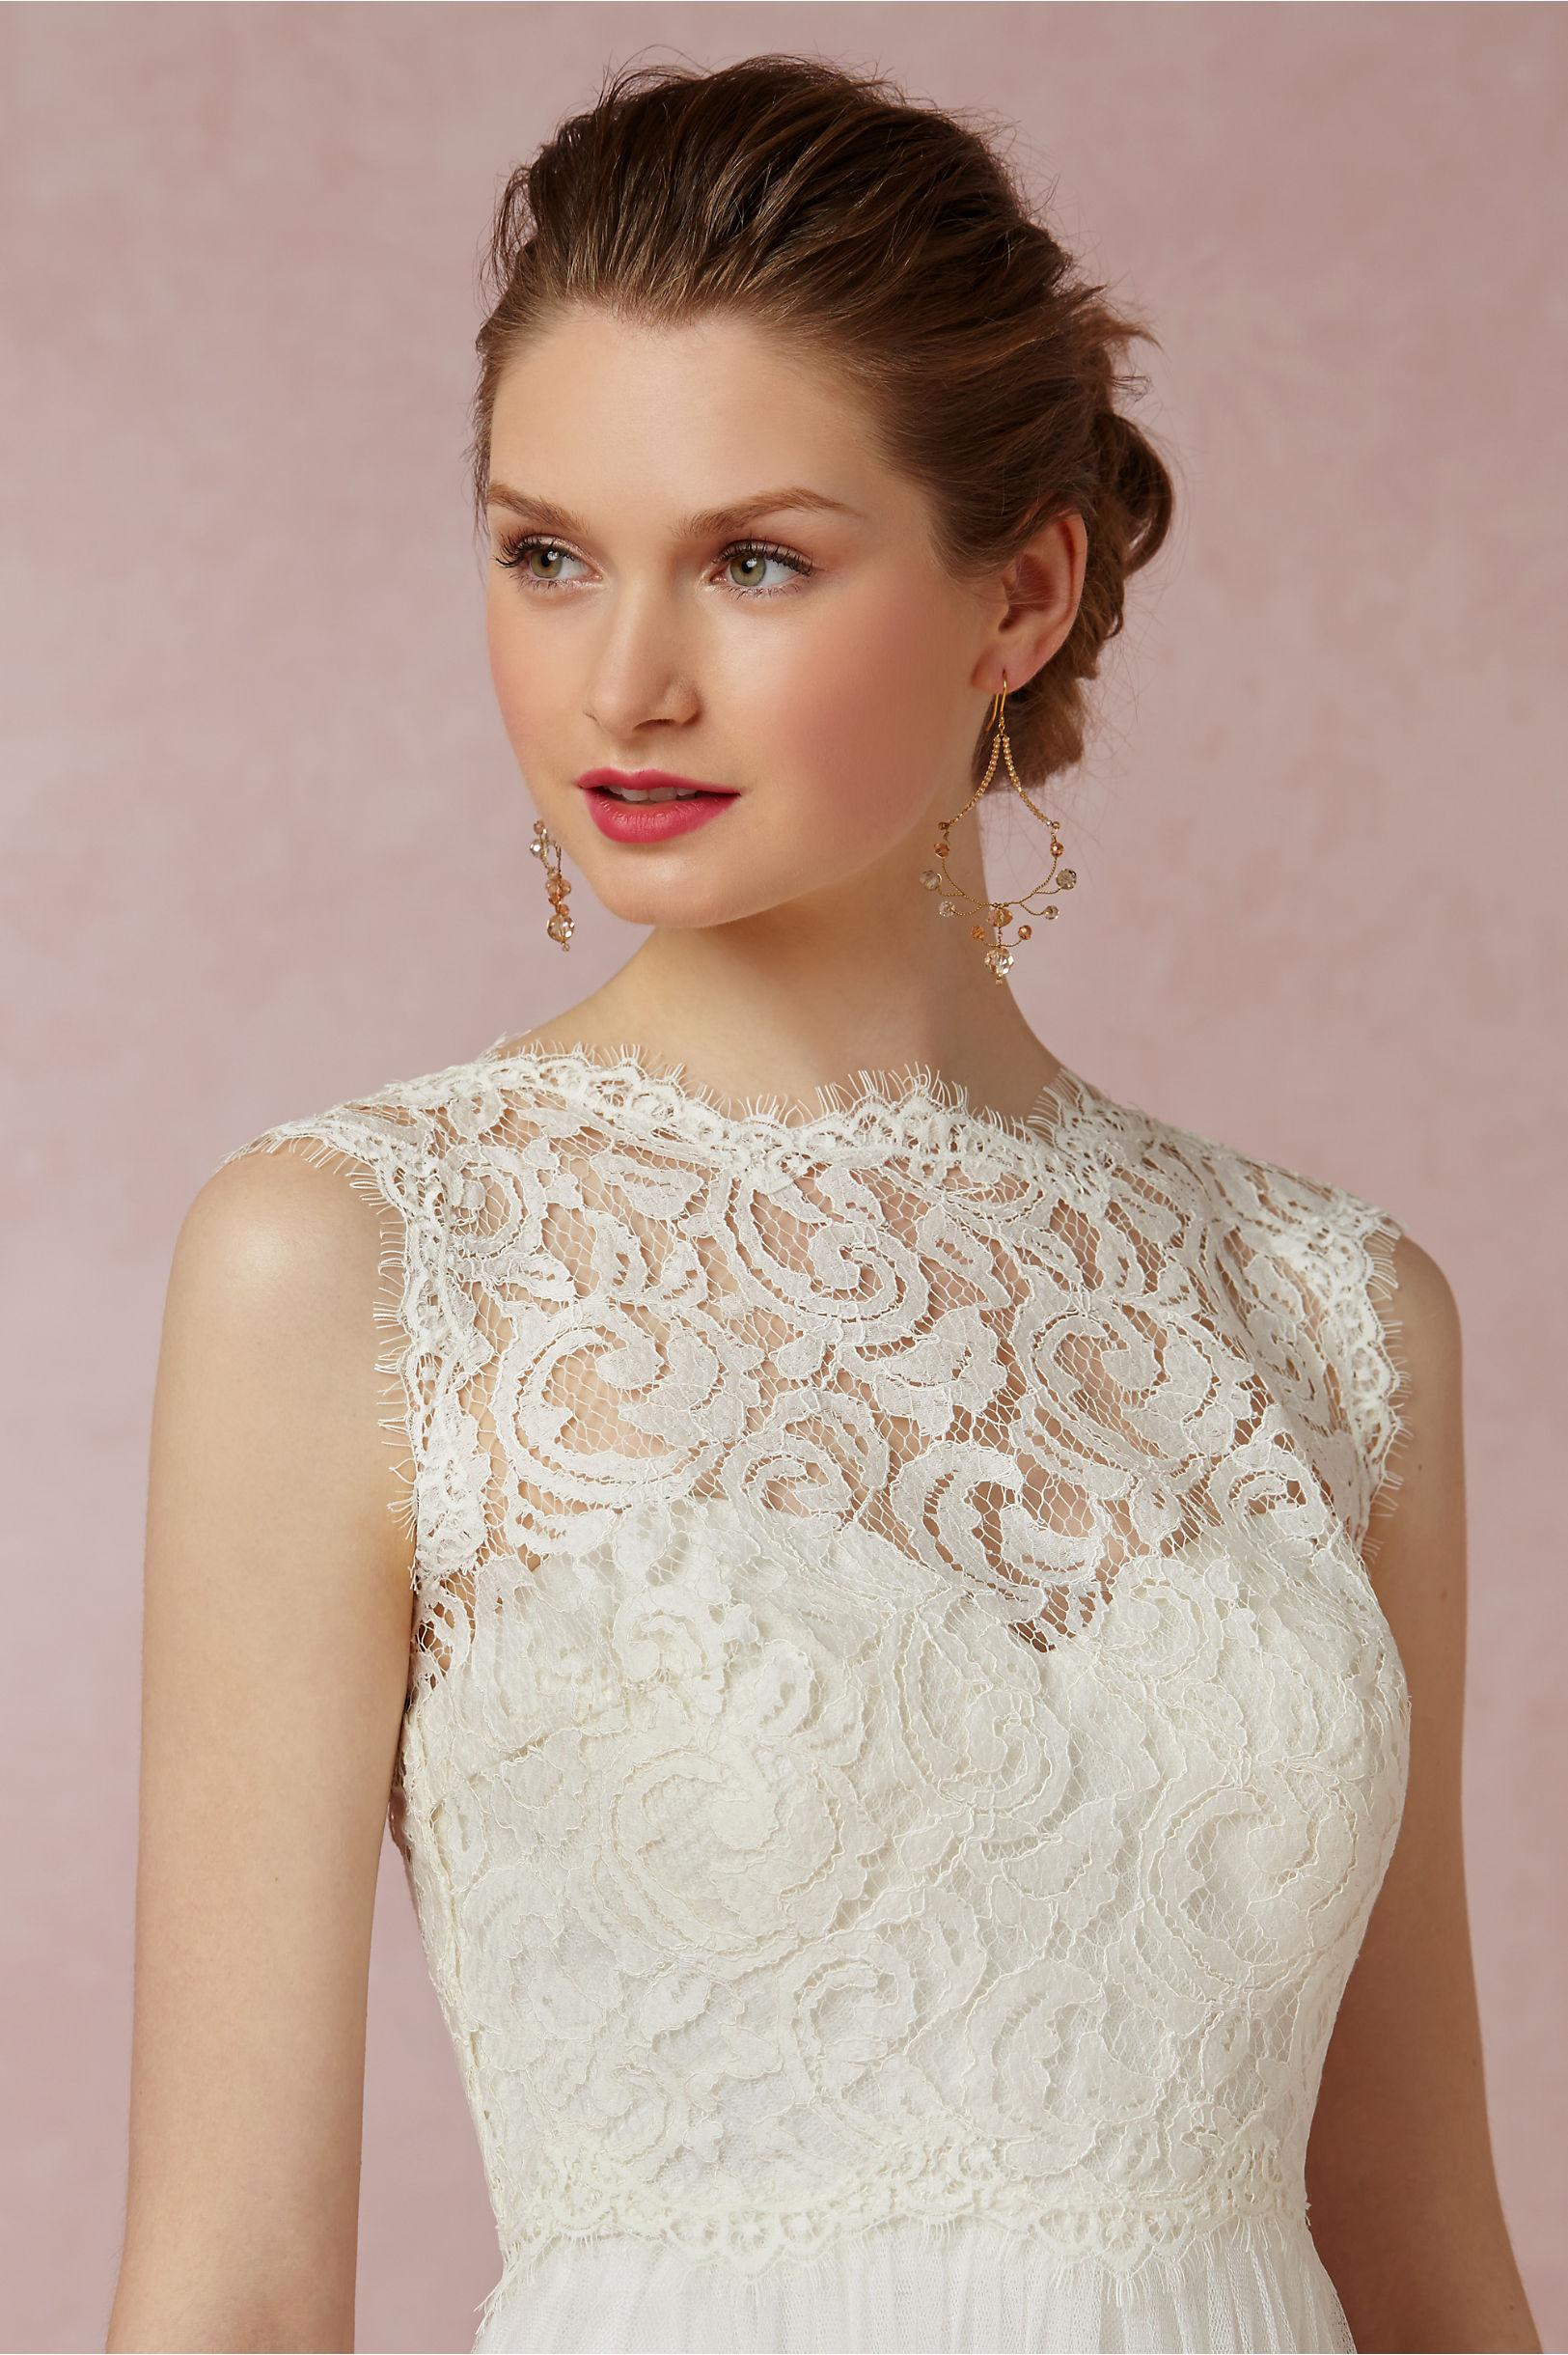 ddc2830159 Wedding Dress Cover Ups | Philly In Love